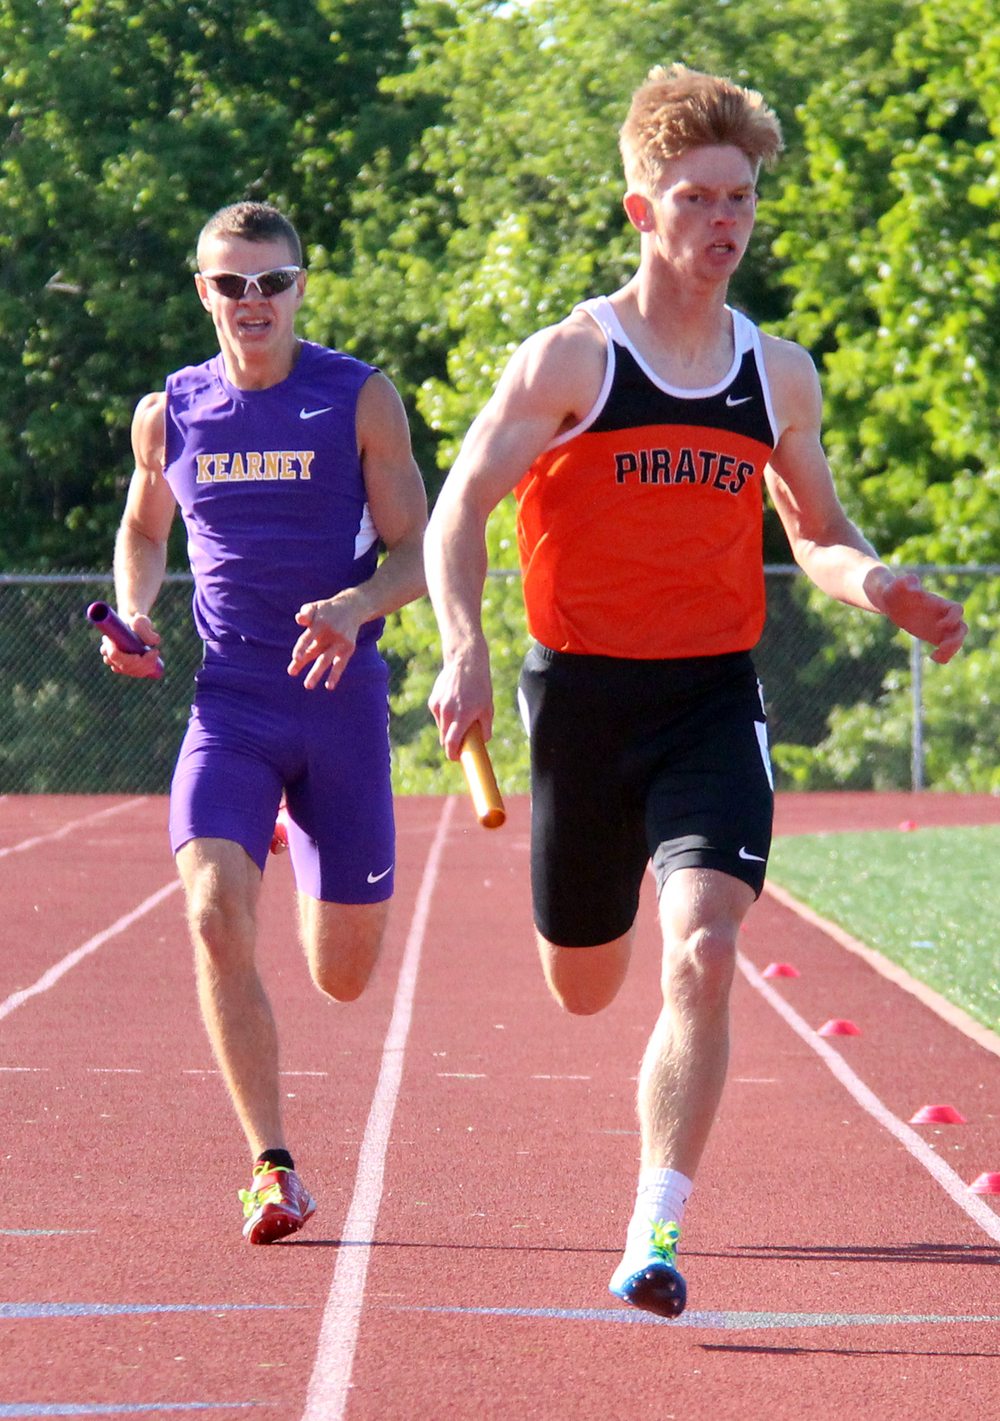 ROSS MARTIN/Citizen photo Platte County senior David Fulk, right, leads Kearney's Nick Pierce down the final straightaway of the 4x400-meter relay during the Class 4 District 8 meet held Saturday, May 14 at Excelsior Springs High School in Excelsior Springs, Mo.